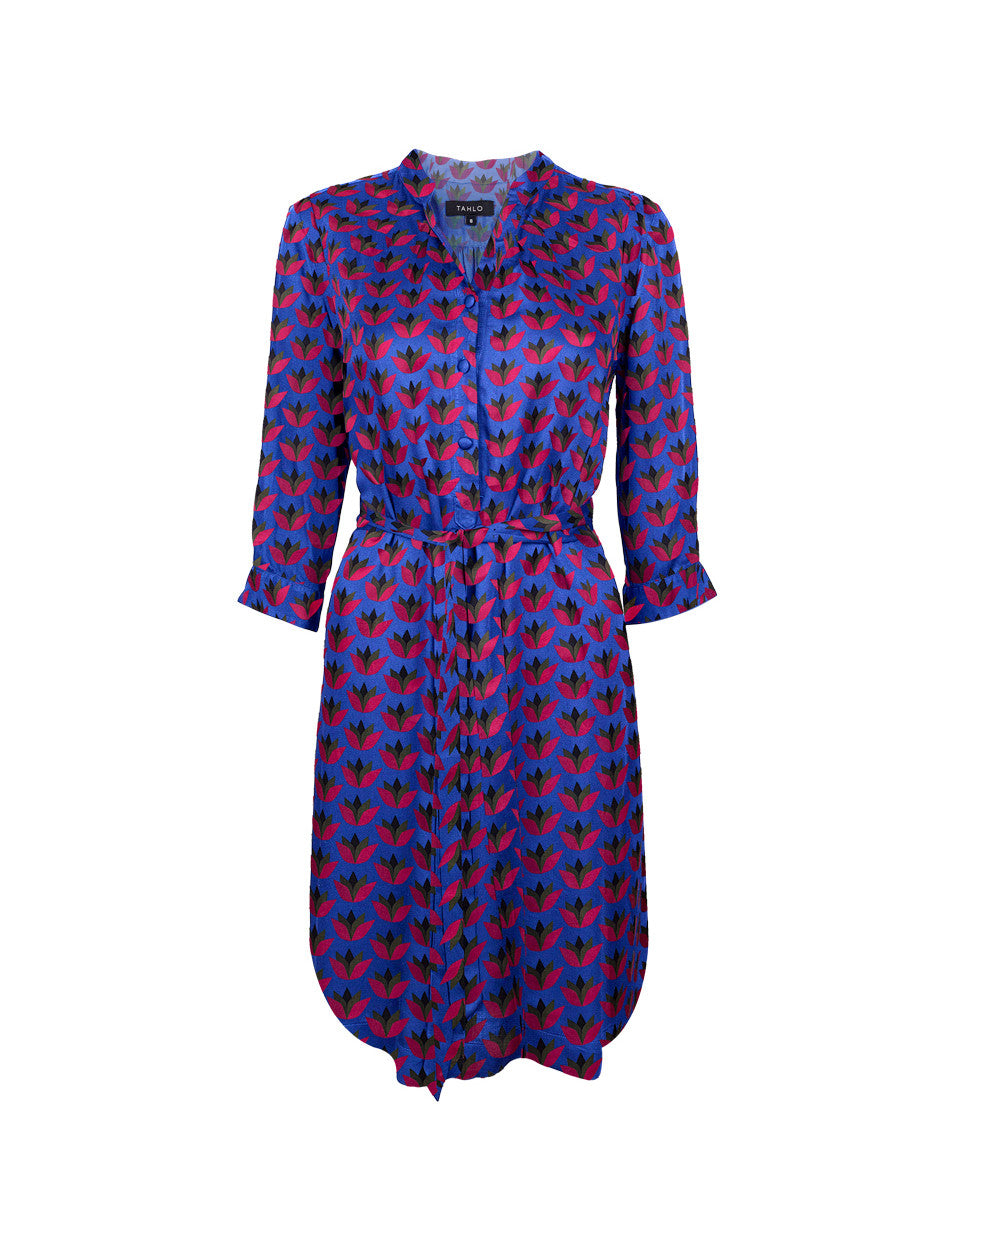 Customised silk shirt dress with Tahlo prints